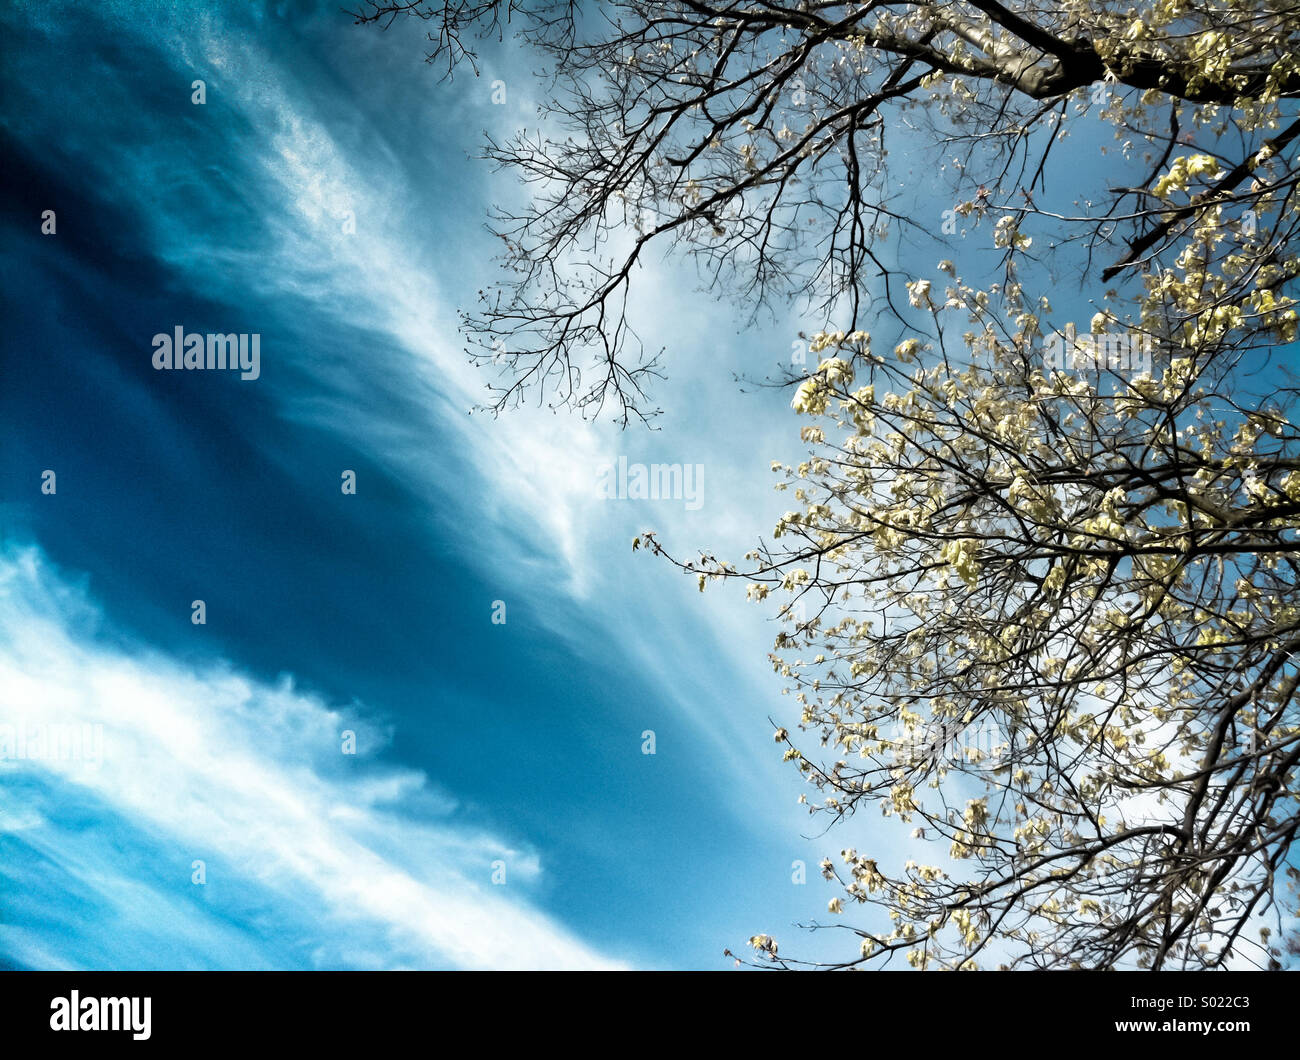 A blue cloudy sky and a blooming tree - Stock Image